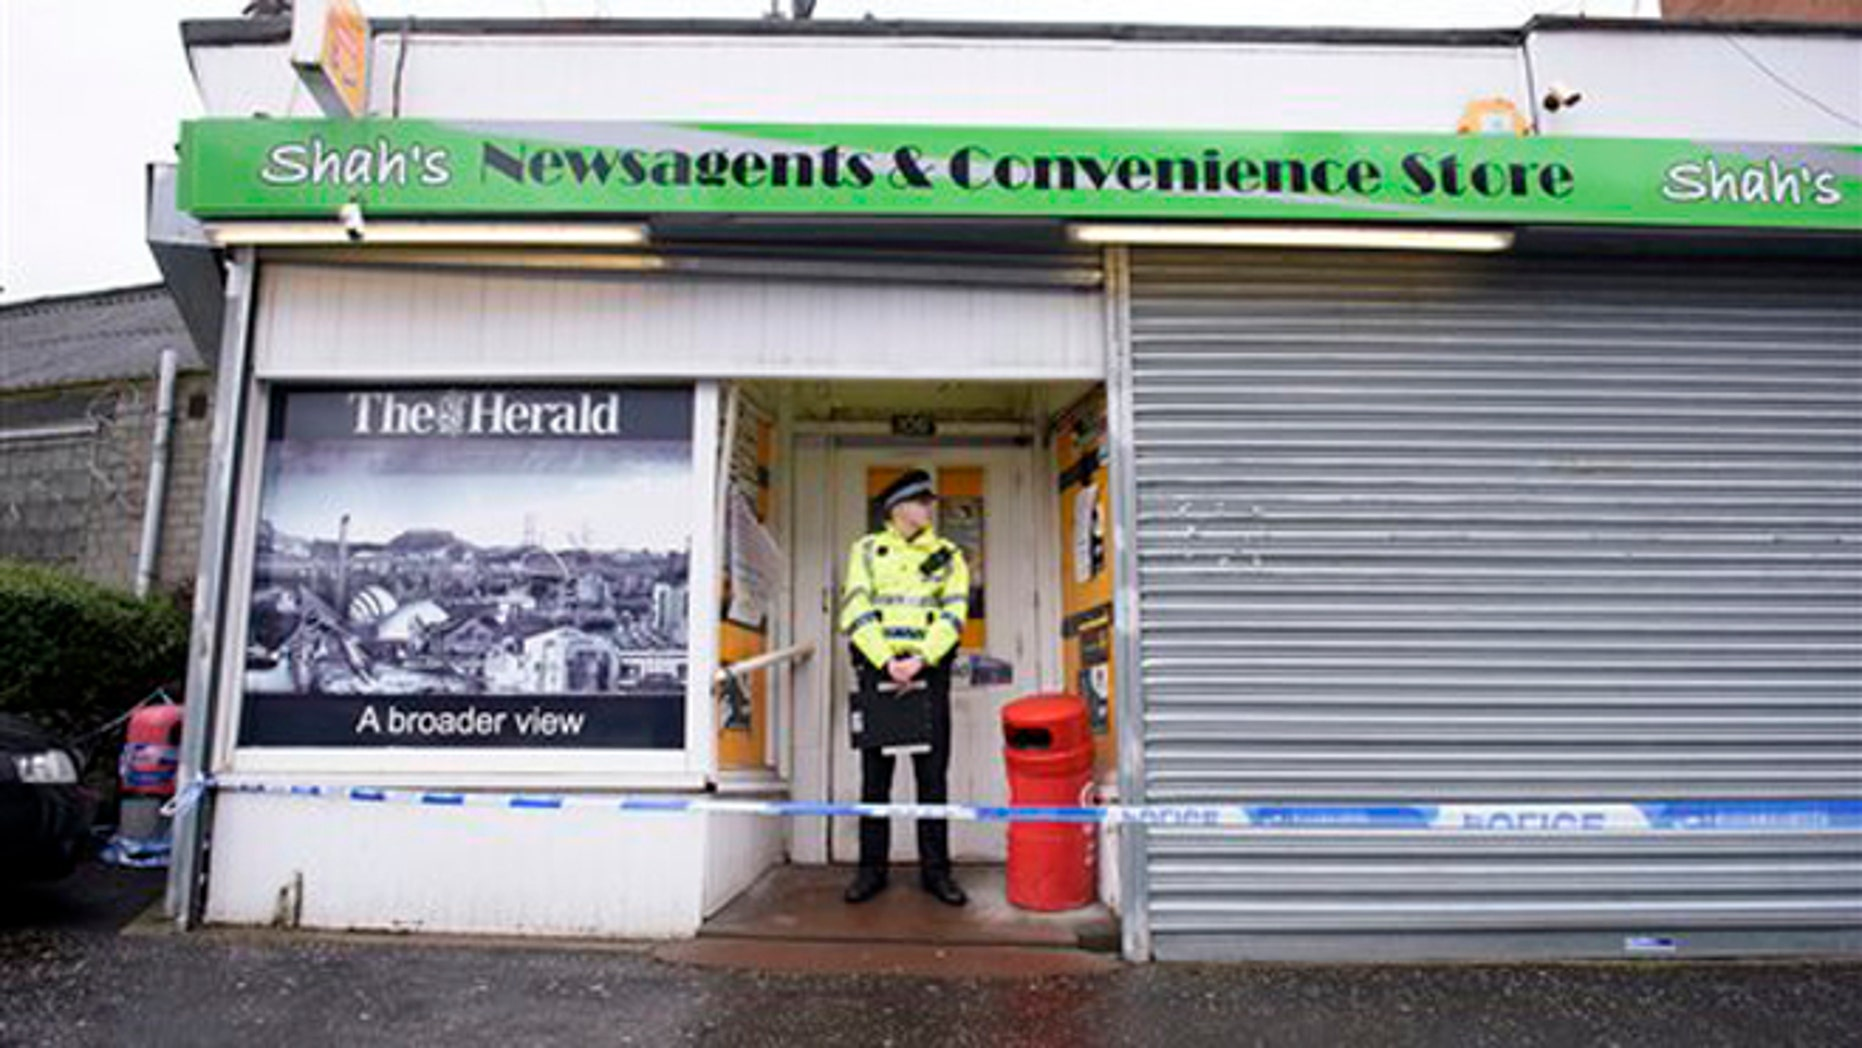 FILE: A police officer stands outside the shop where Asad Shah worked in Glasgow.